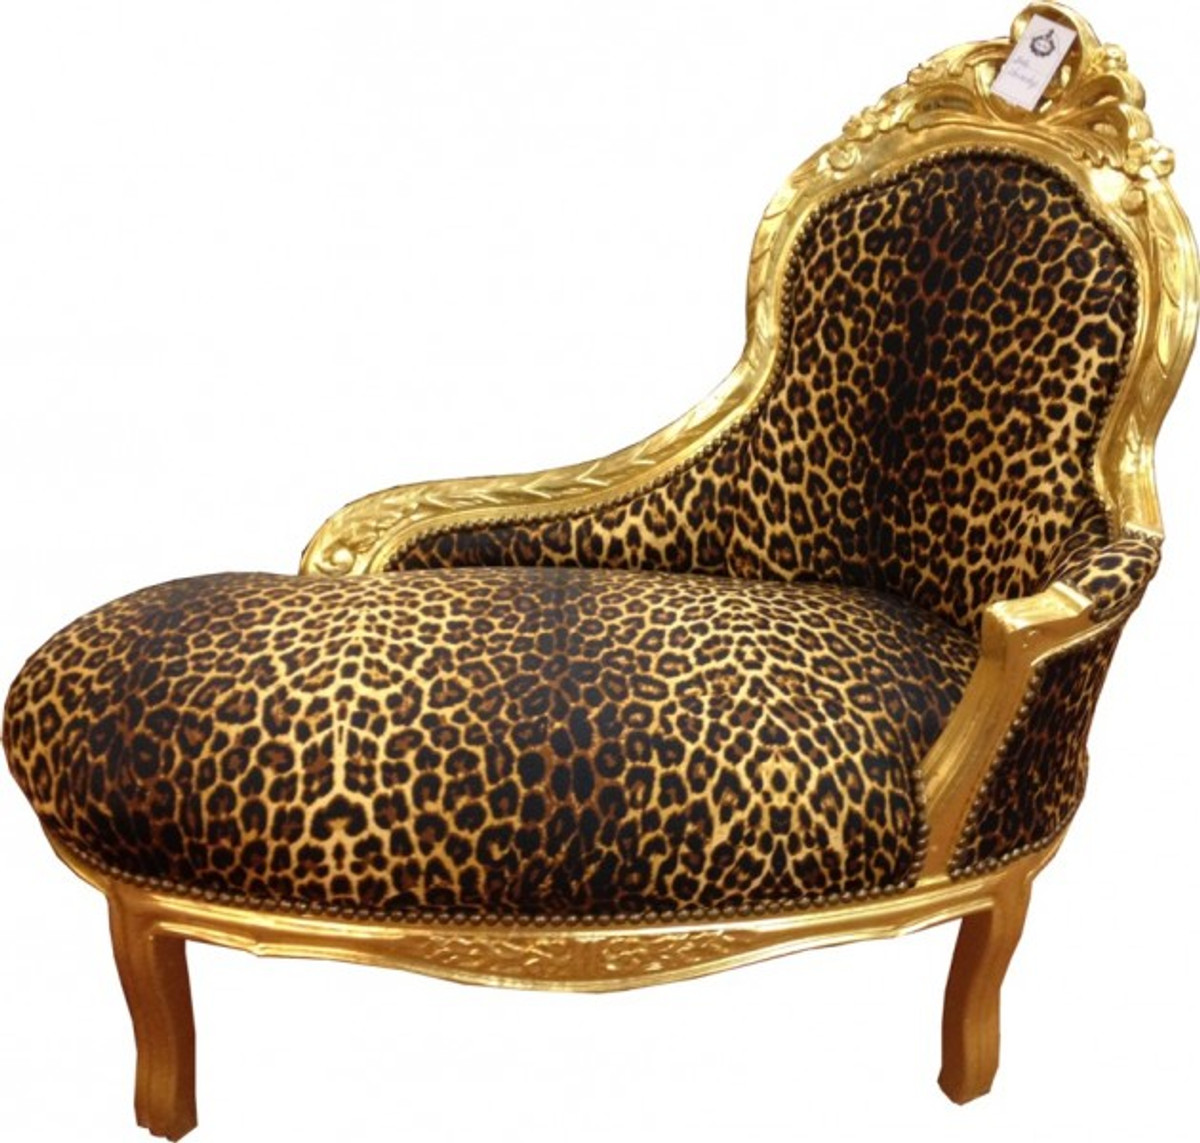 Baroque kids chaise leopard gold baroque furniture - Chaise baroque argentee ...